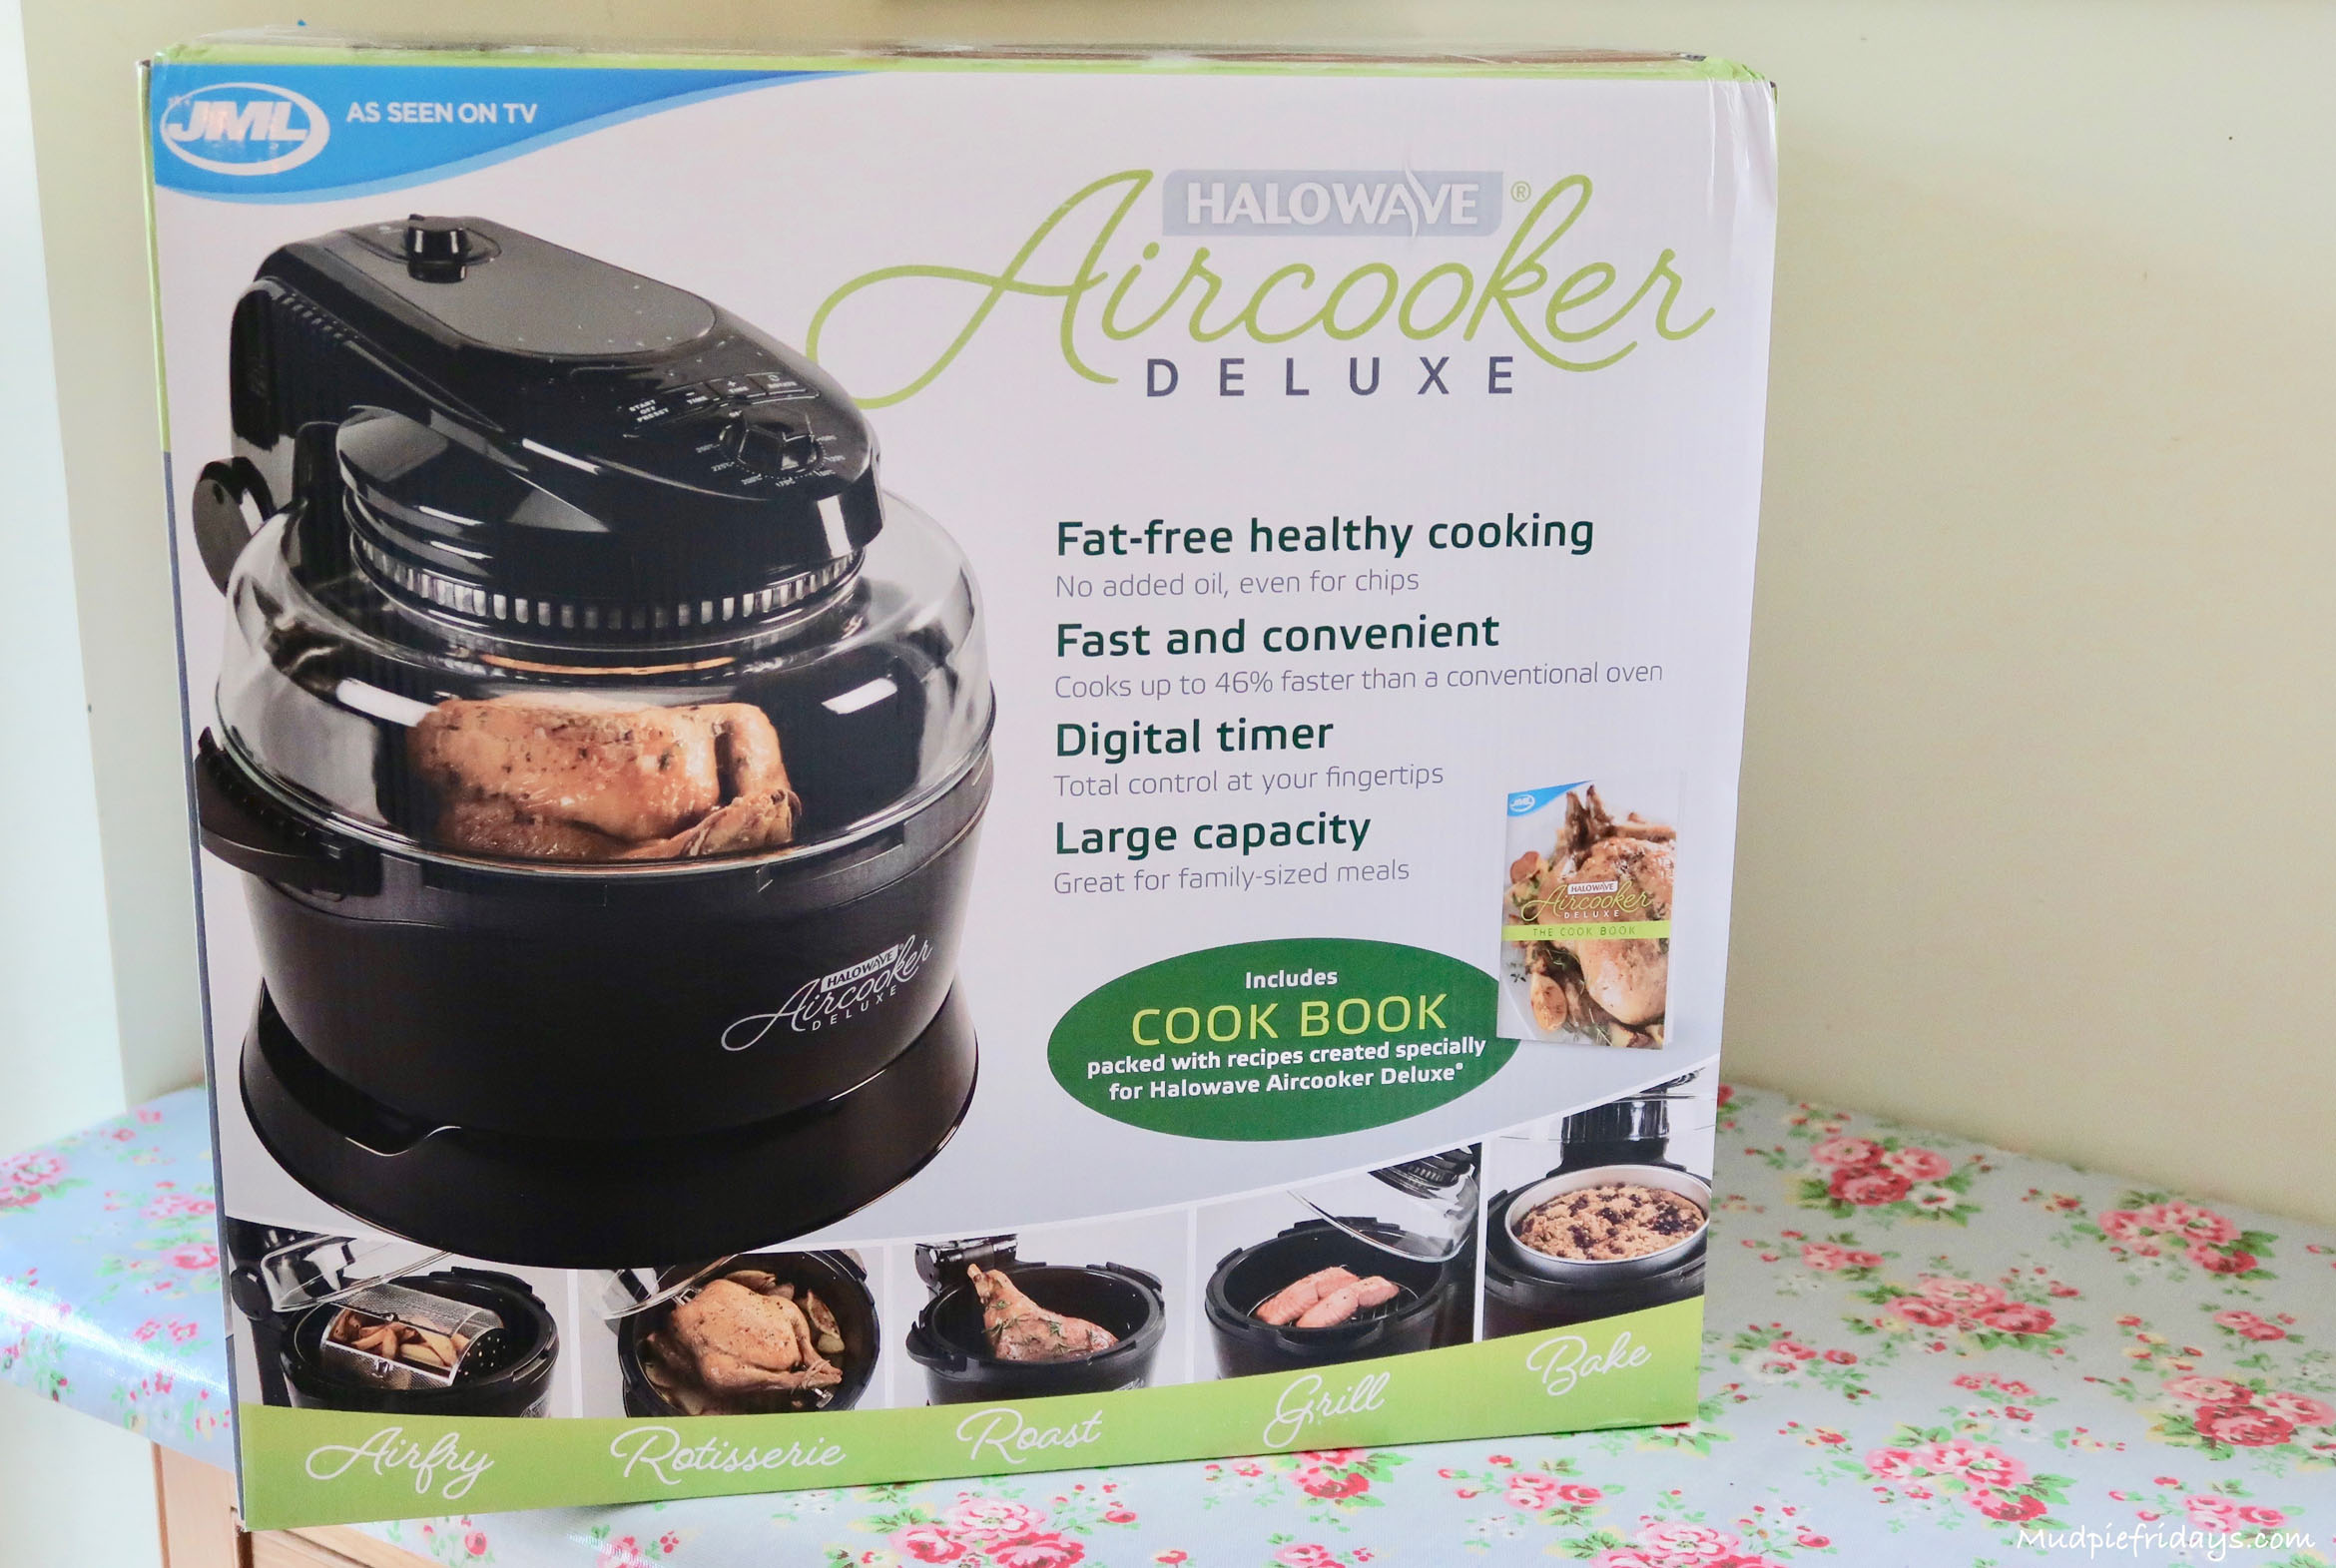 Halowave Aircooker Deluxe Review & Giveaway - mudpiefridays.com